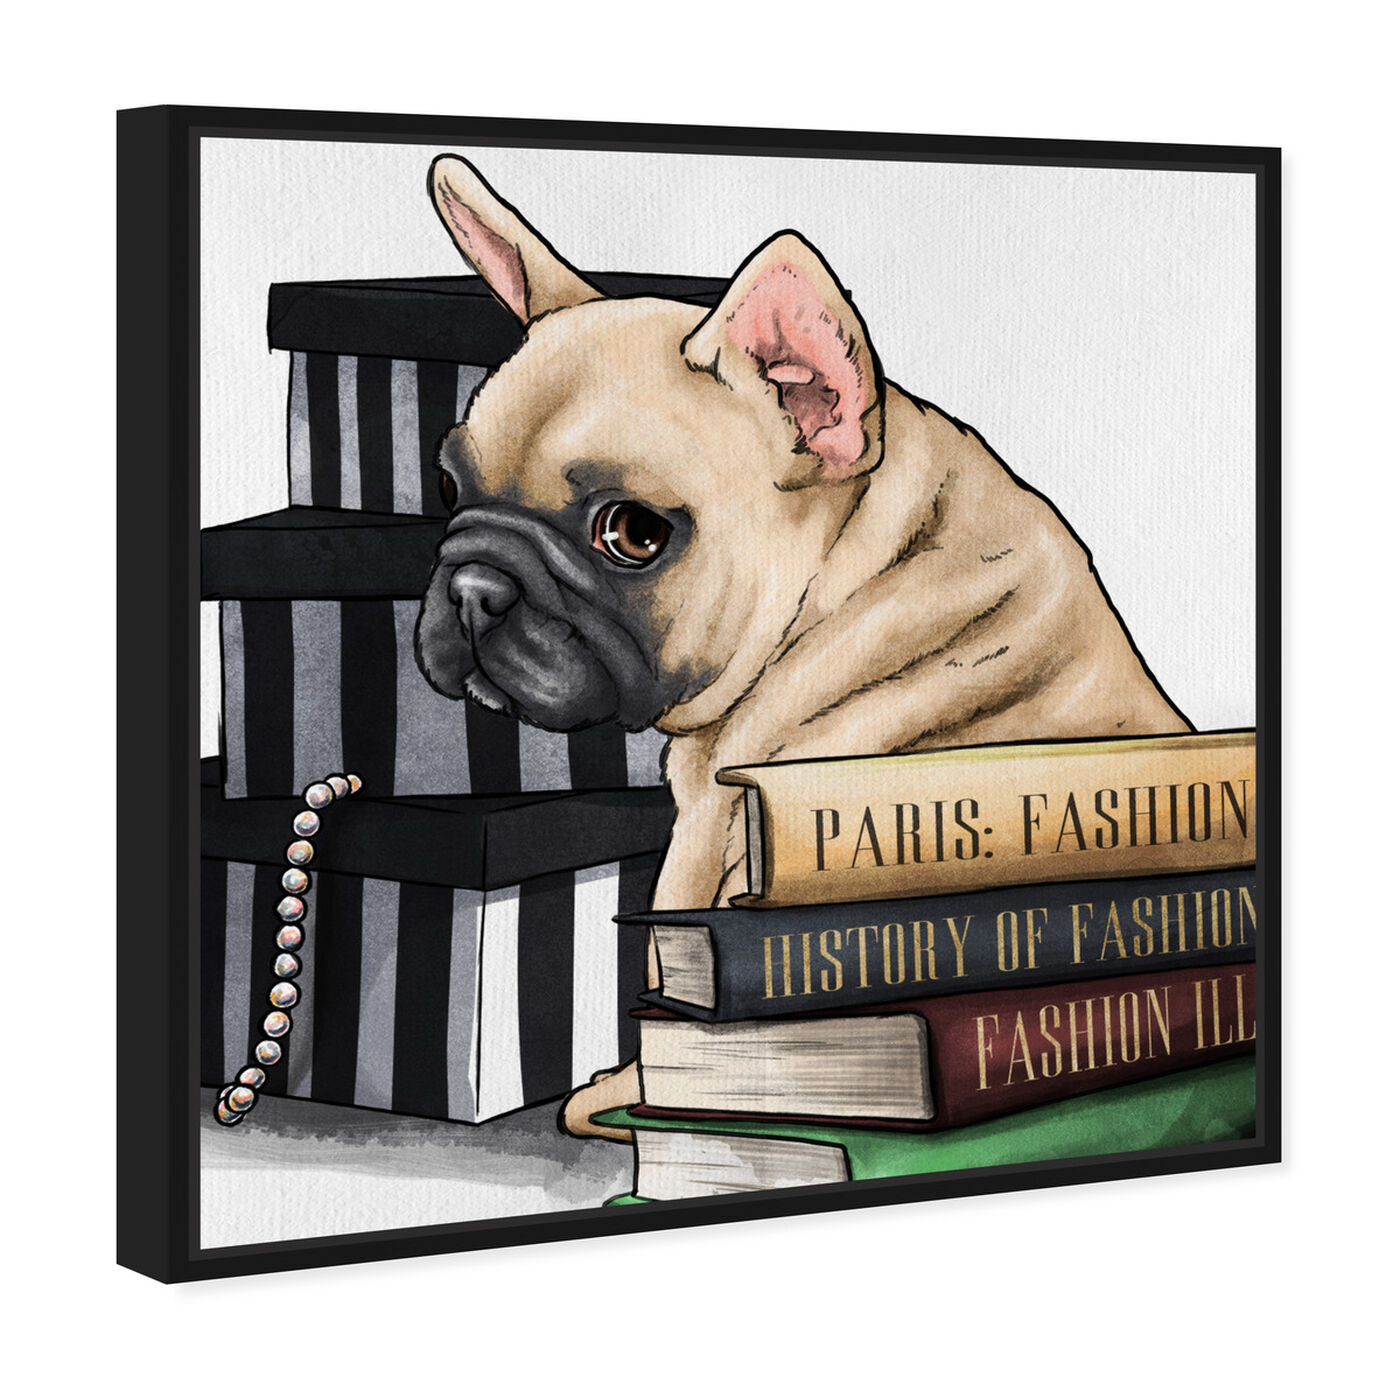 Angled view of Fashion Books Frenchie featuring animals and dogs and puppies art.